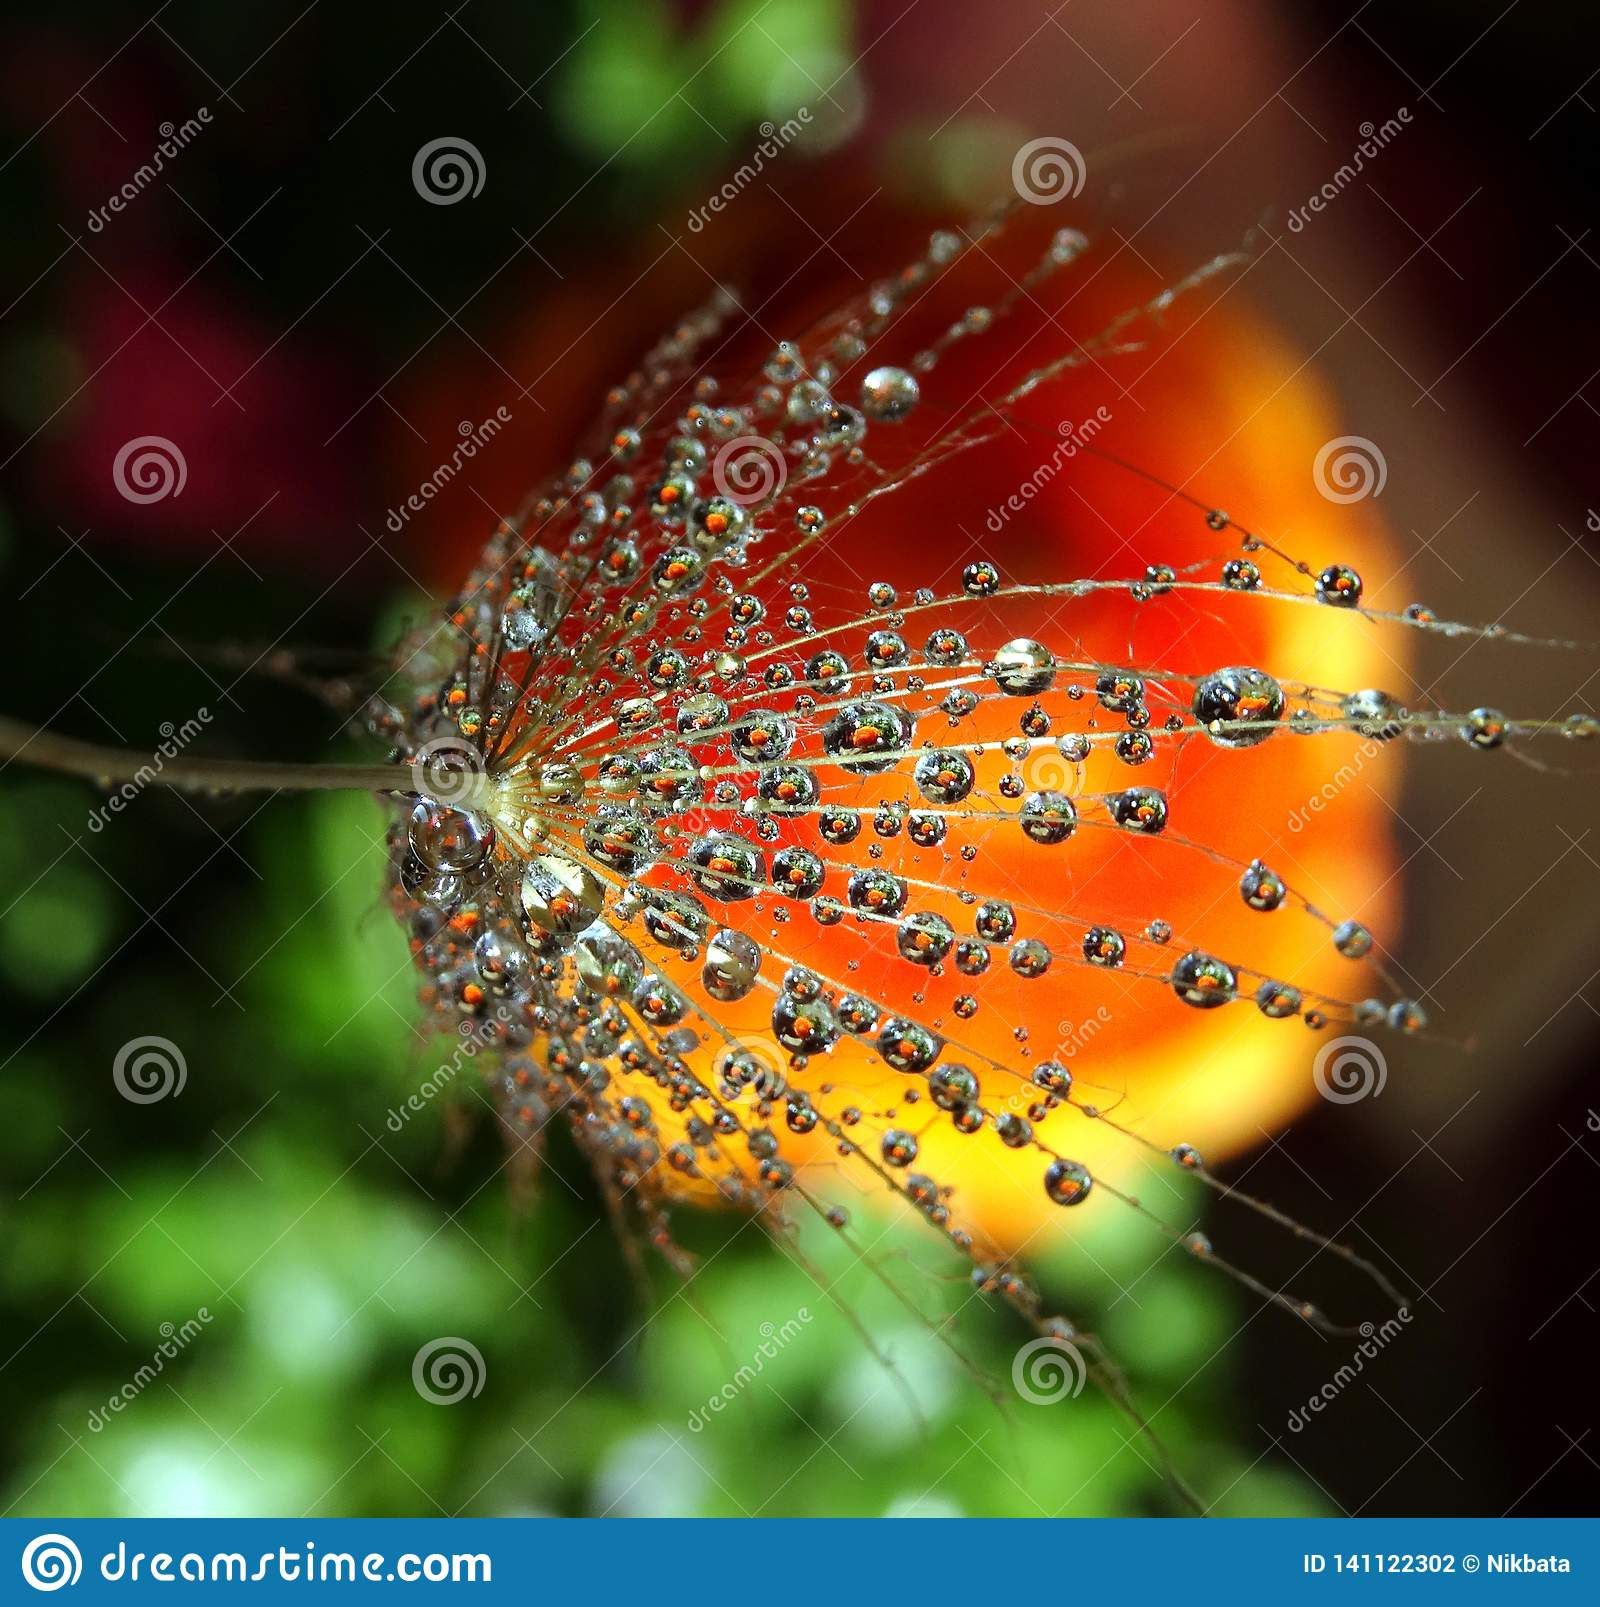 Part of the dandelion seed with water drops on a colorful background